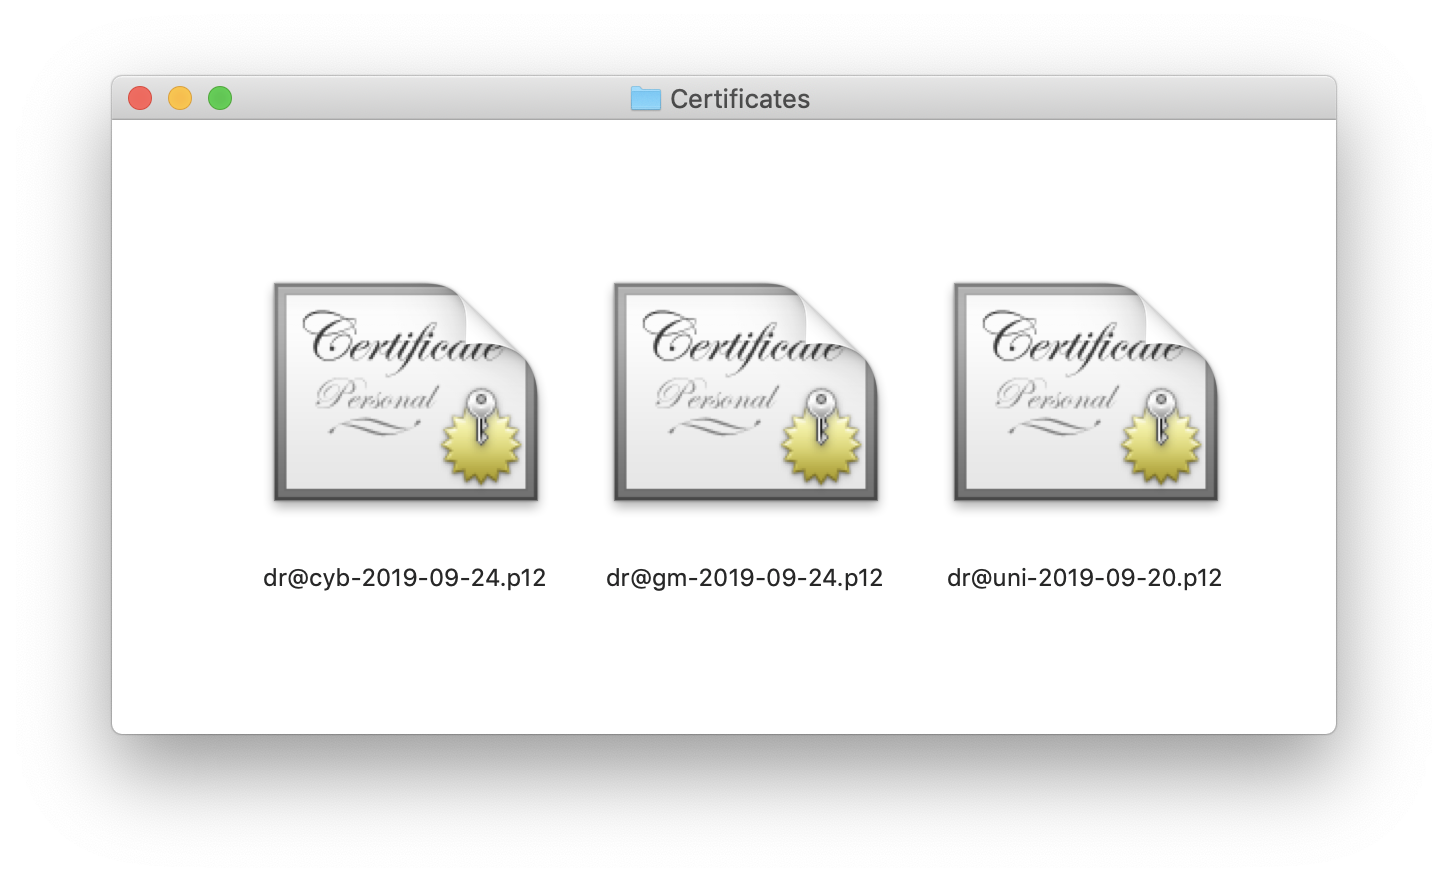 Certificates files on my desktop